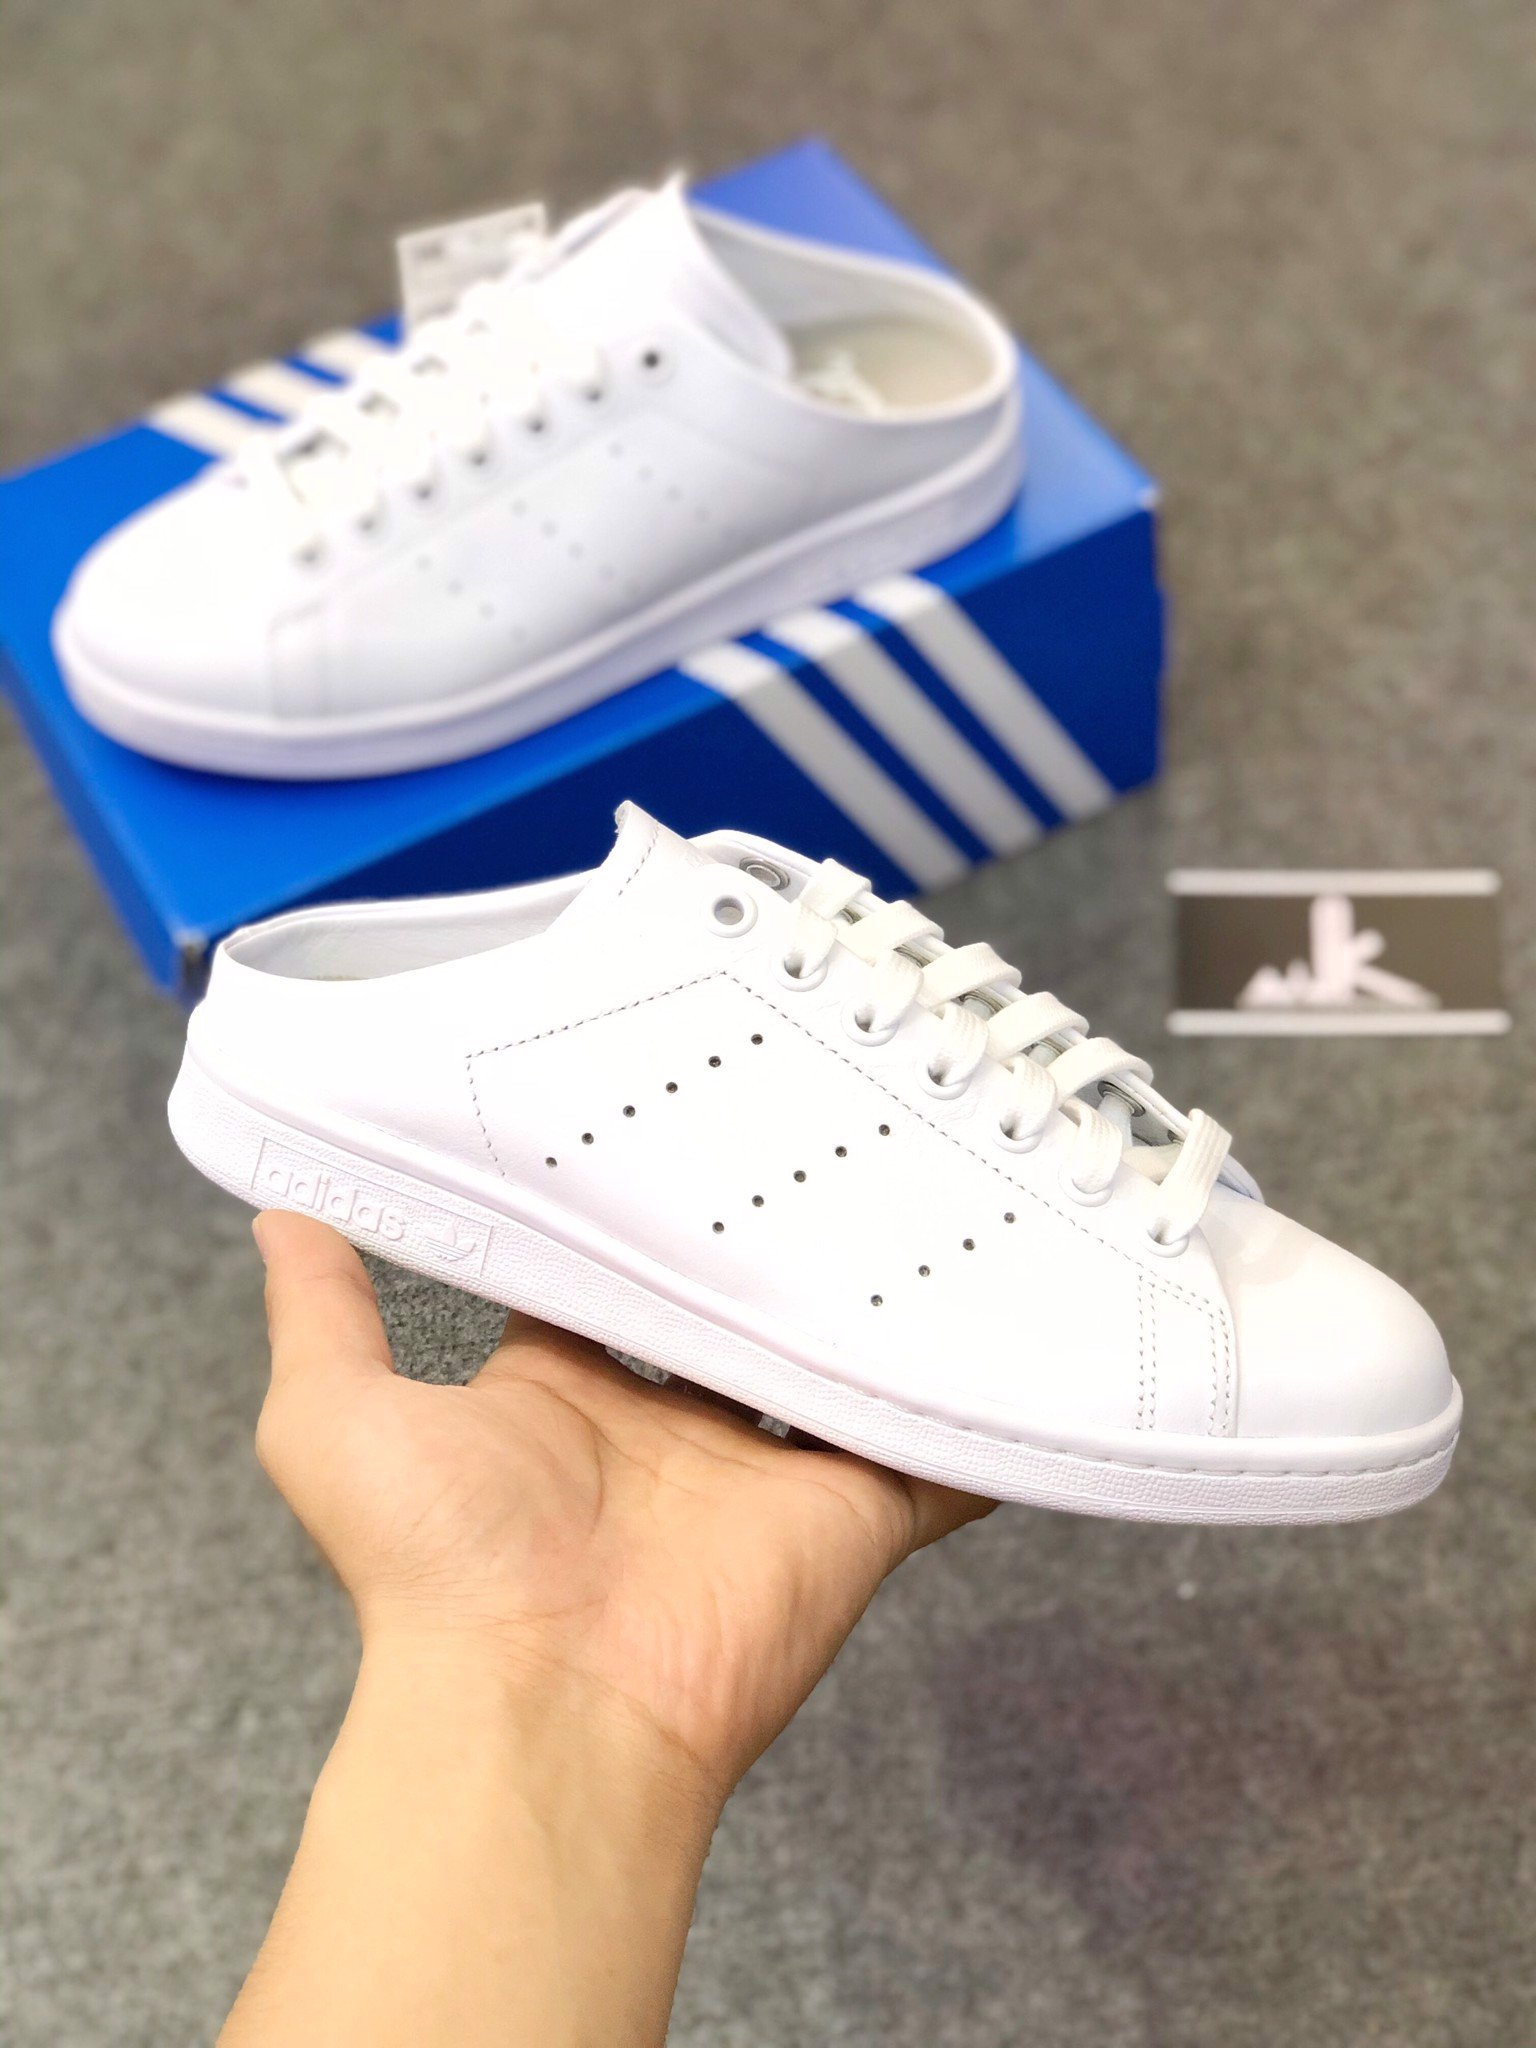 FX0532 - Stan Smith Mule All White